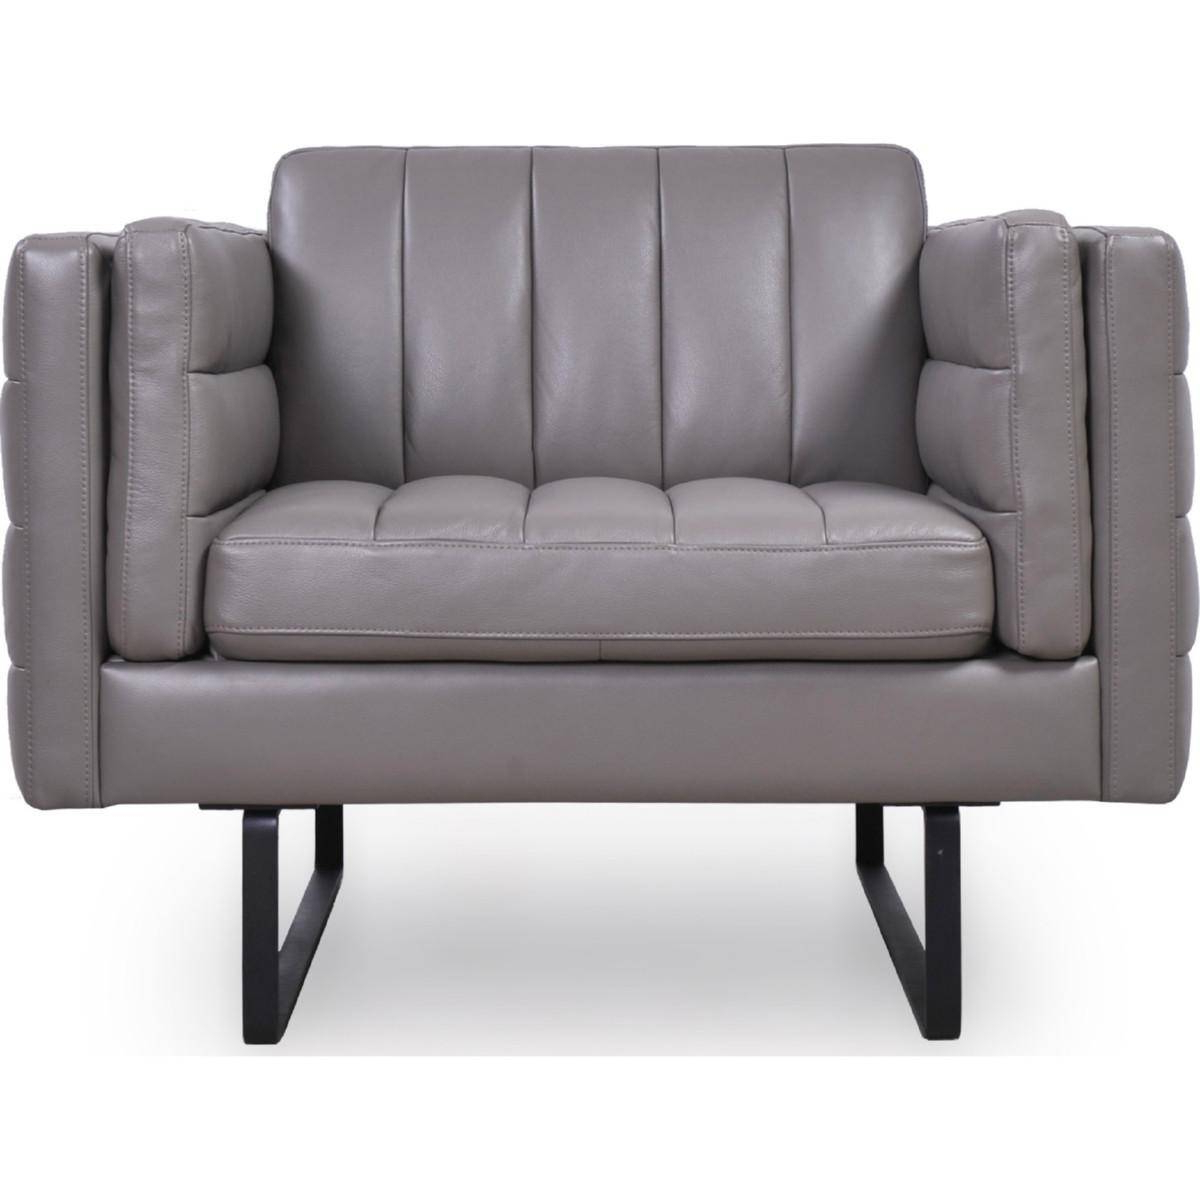 Buy Moroni Orson 582 Arm Chairs In Gray, Top Grain Leather In Orsen Tv Stands (View 10 of 20)